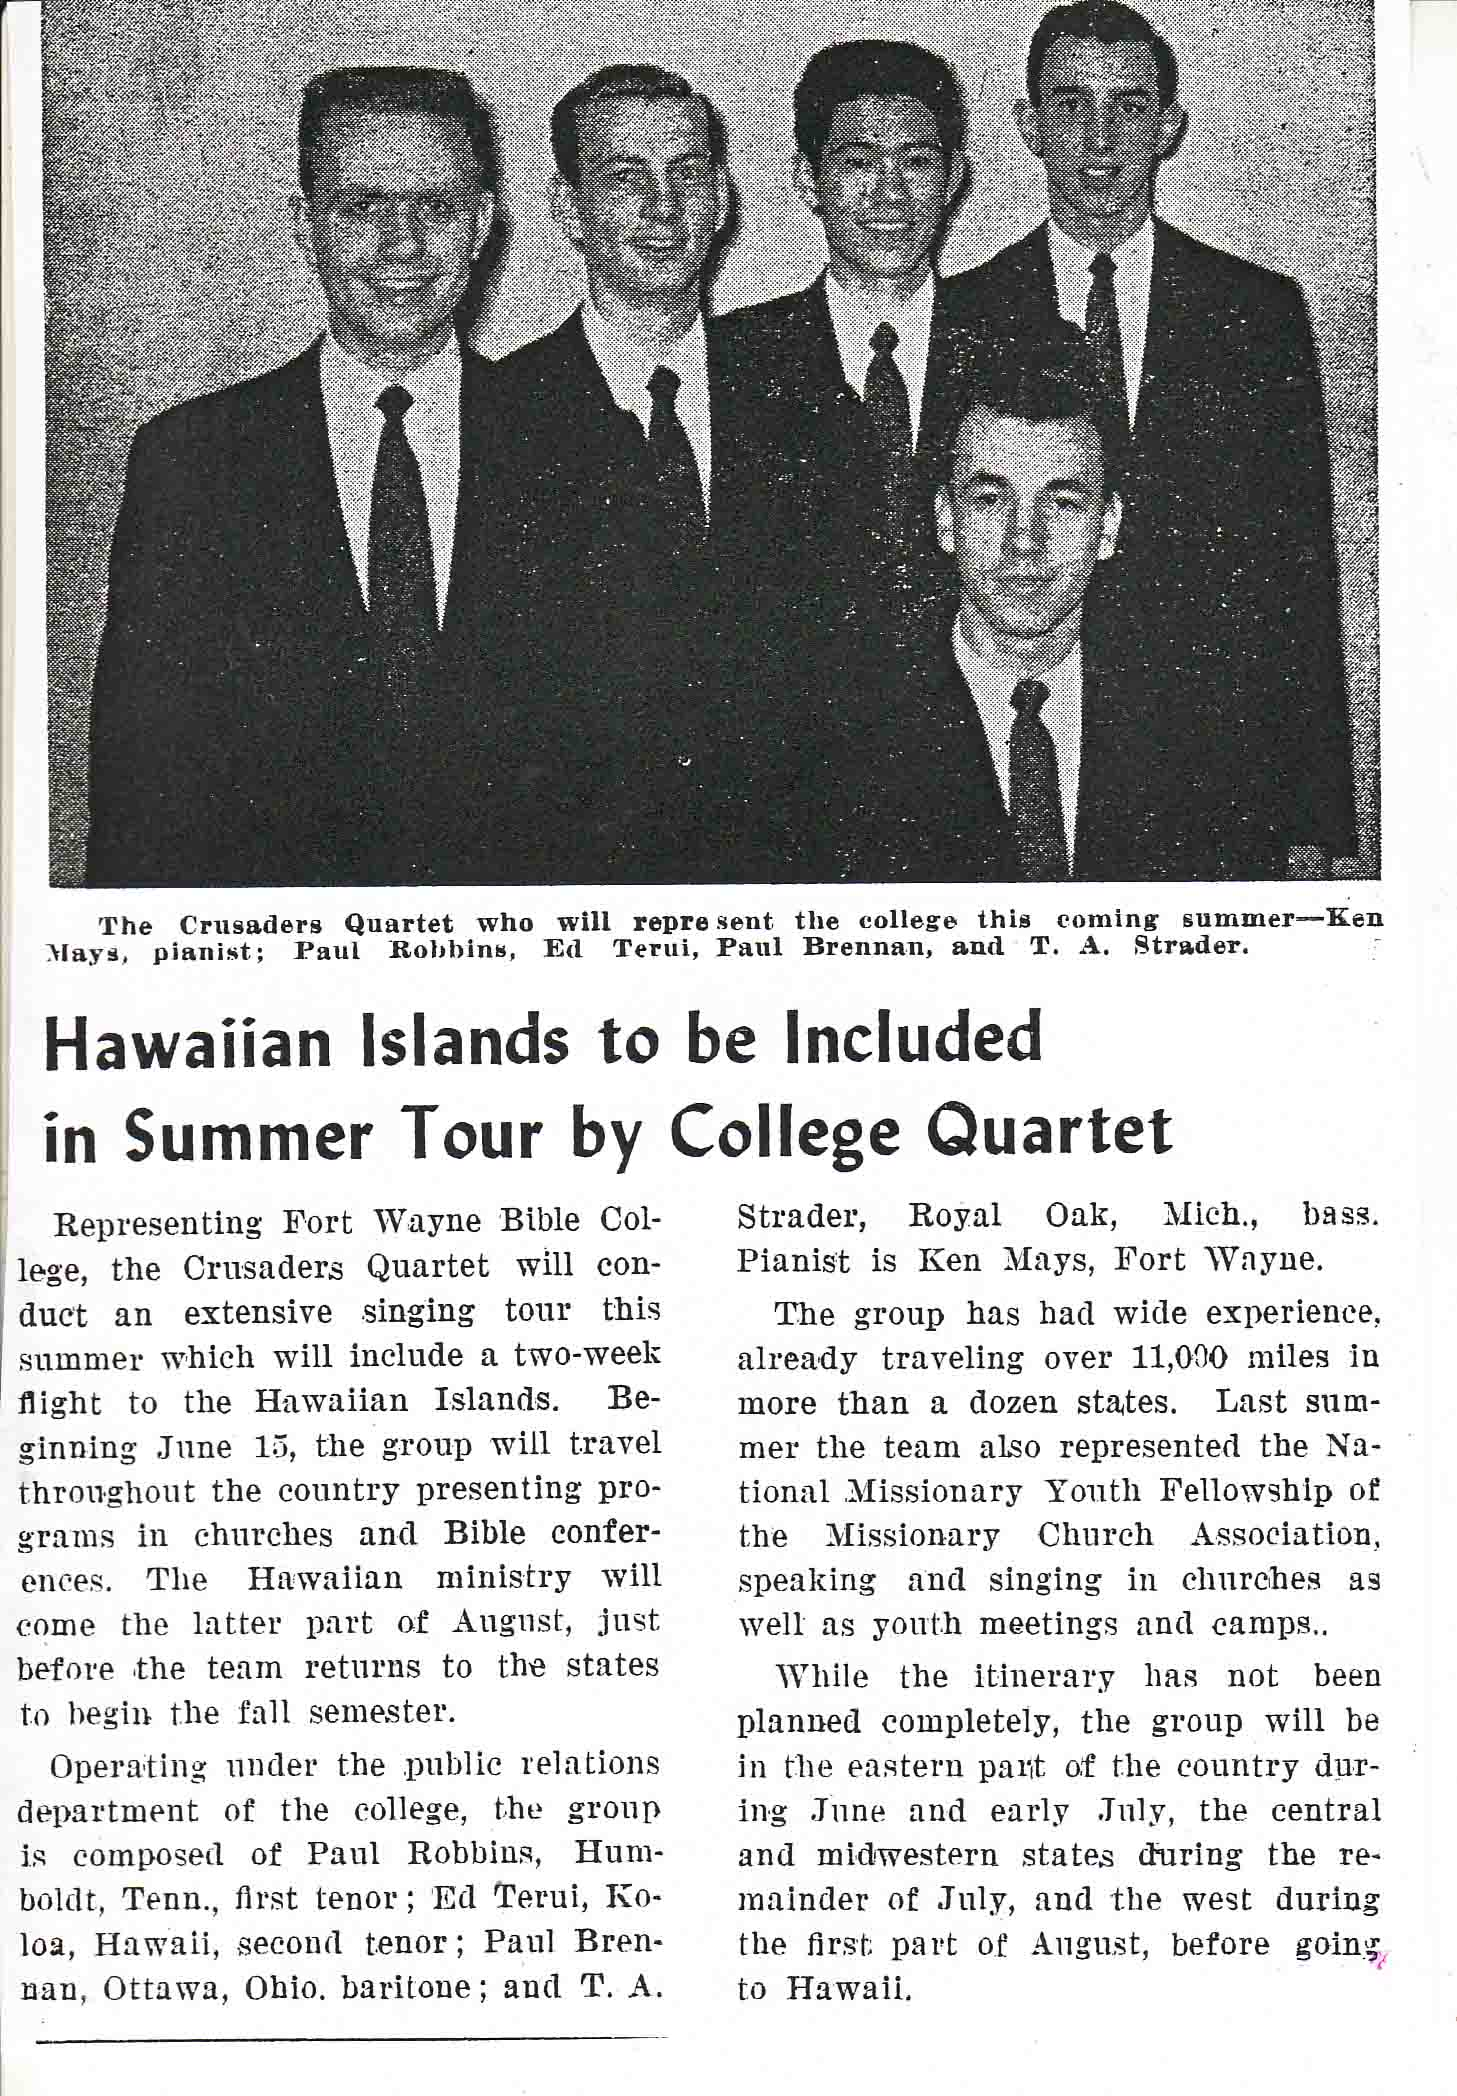 1958 Crusaders Quartet newspaper clipping about summer tour